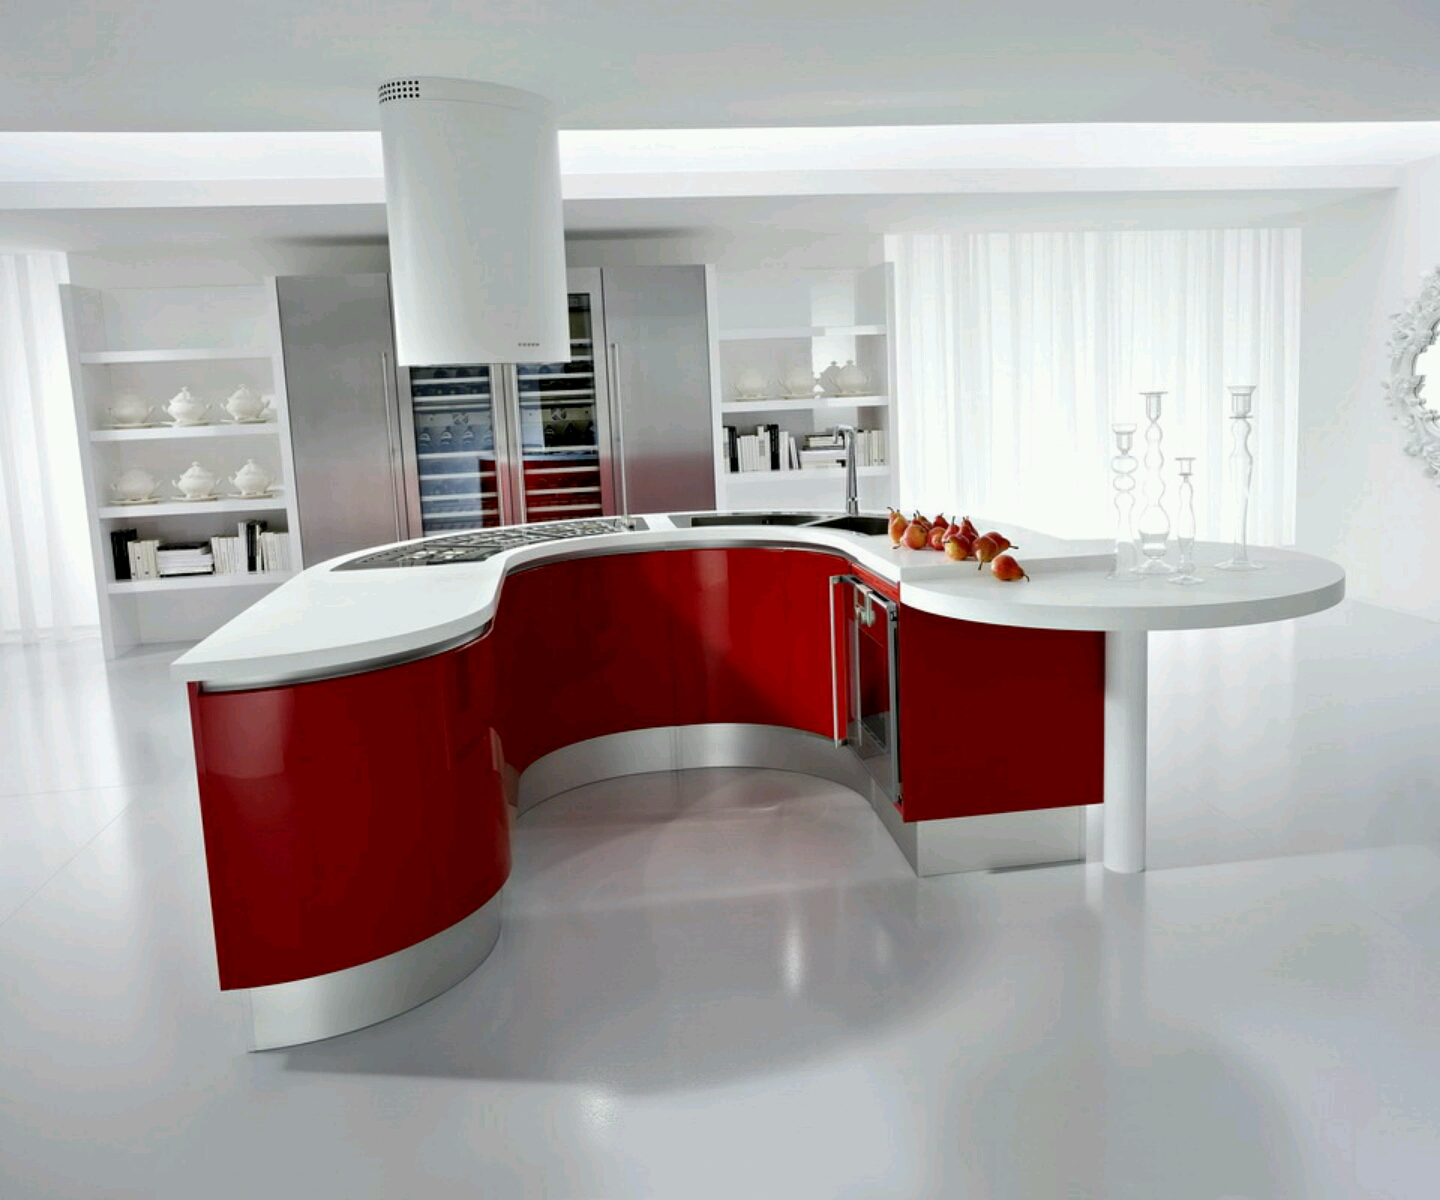 Modern kitchen cabinets designs ideas furniture gallery for Modern kitchen cabinets design ideas